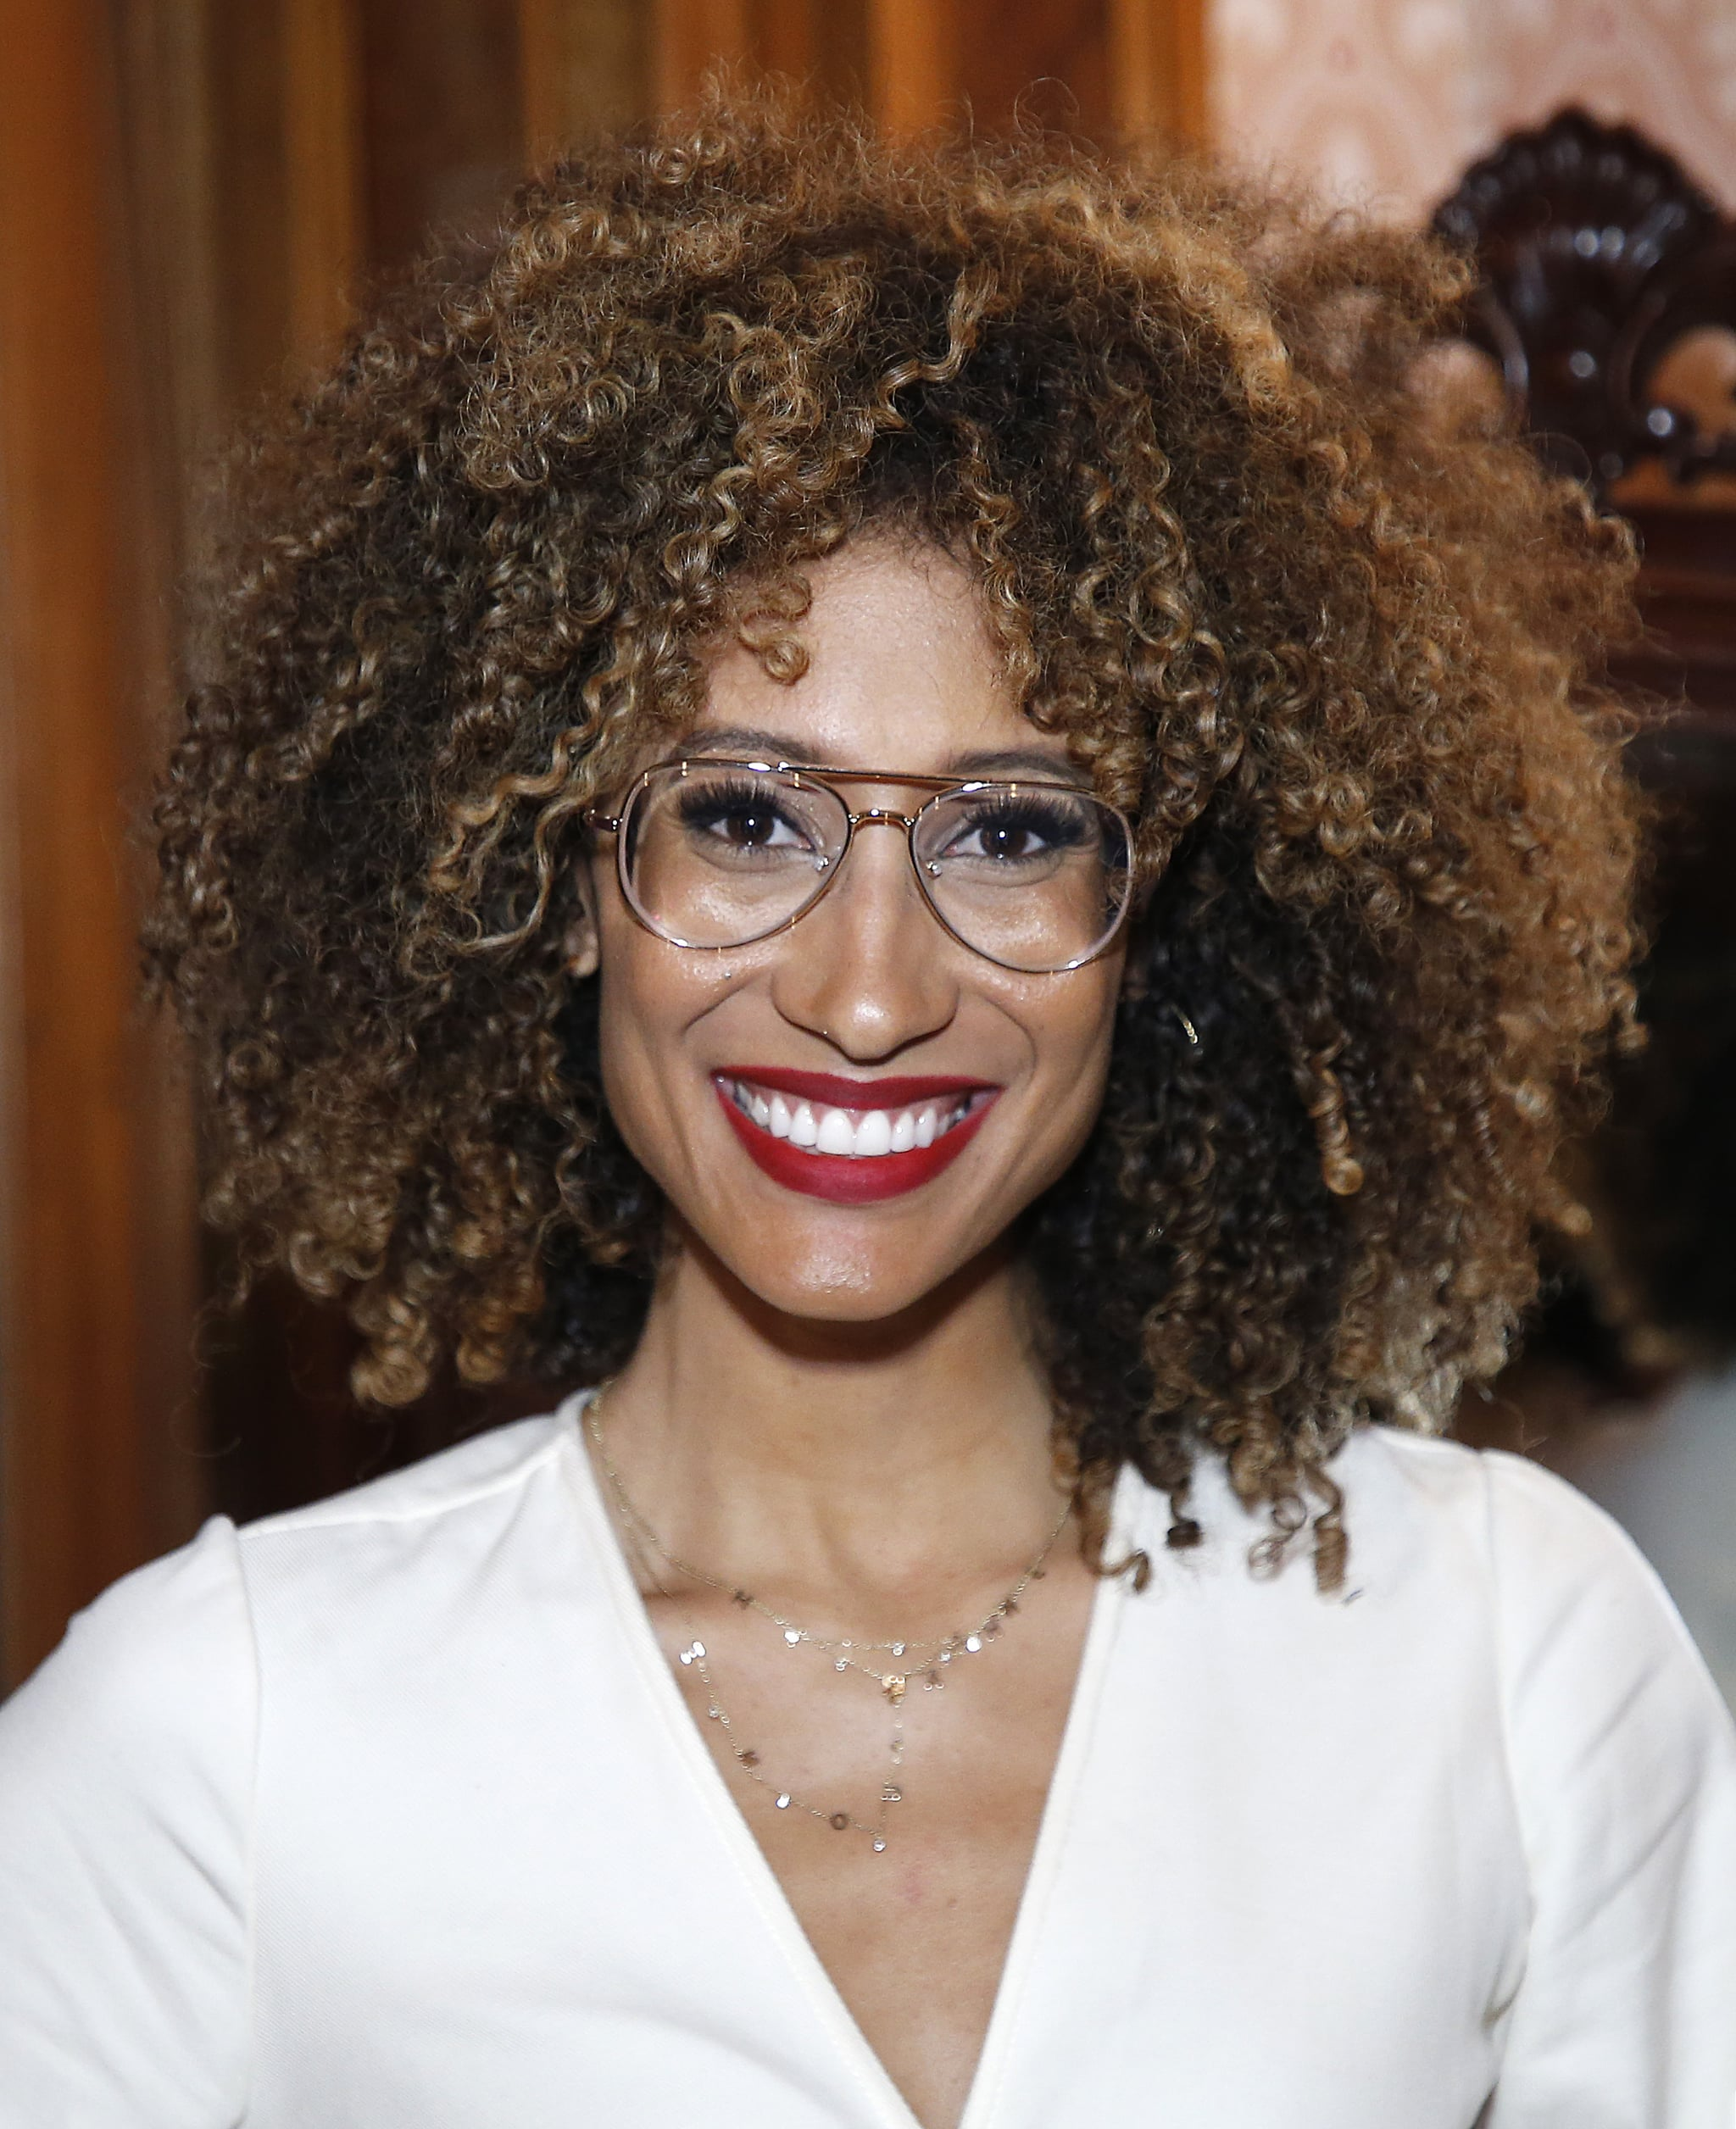 BROOKLYN, NEW YORK - OCTOBER 18:  Elaine Welteroth poses during Invest in Brooklyn Dinner at The Weylin on October 18, 2019 in Brooklyn, New York. (Photo by John Lamparski/Getty Images)